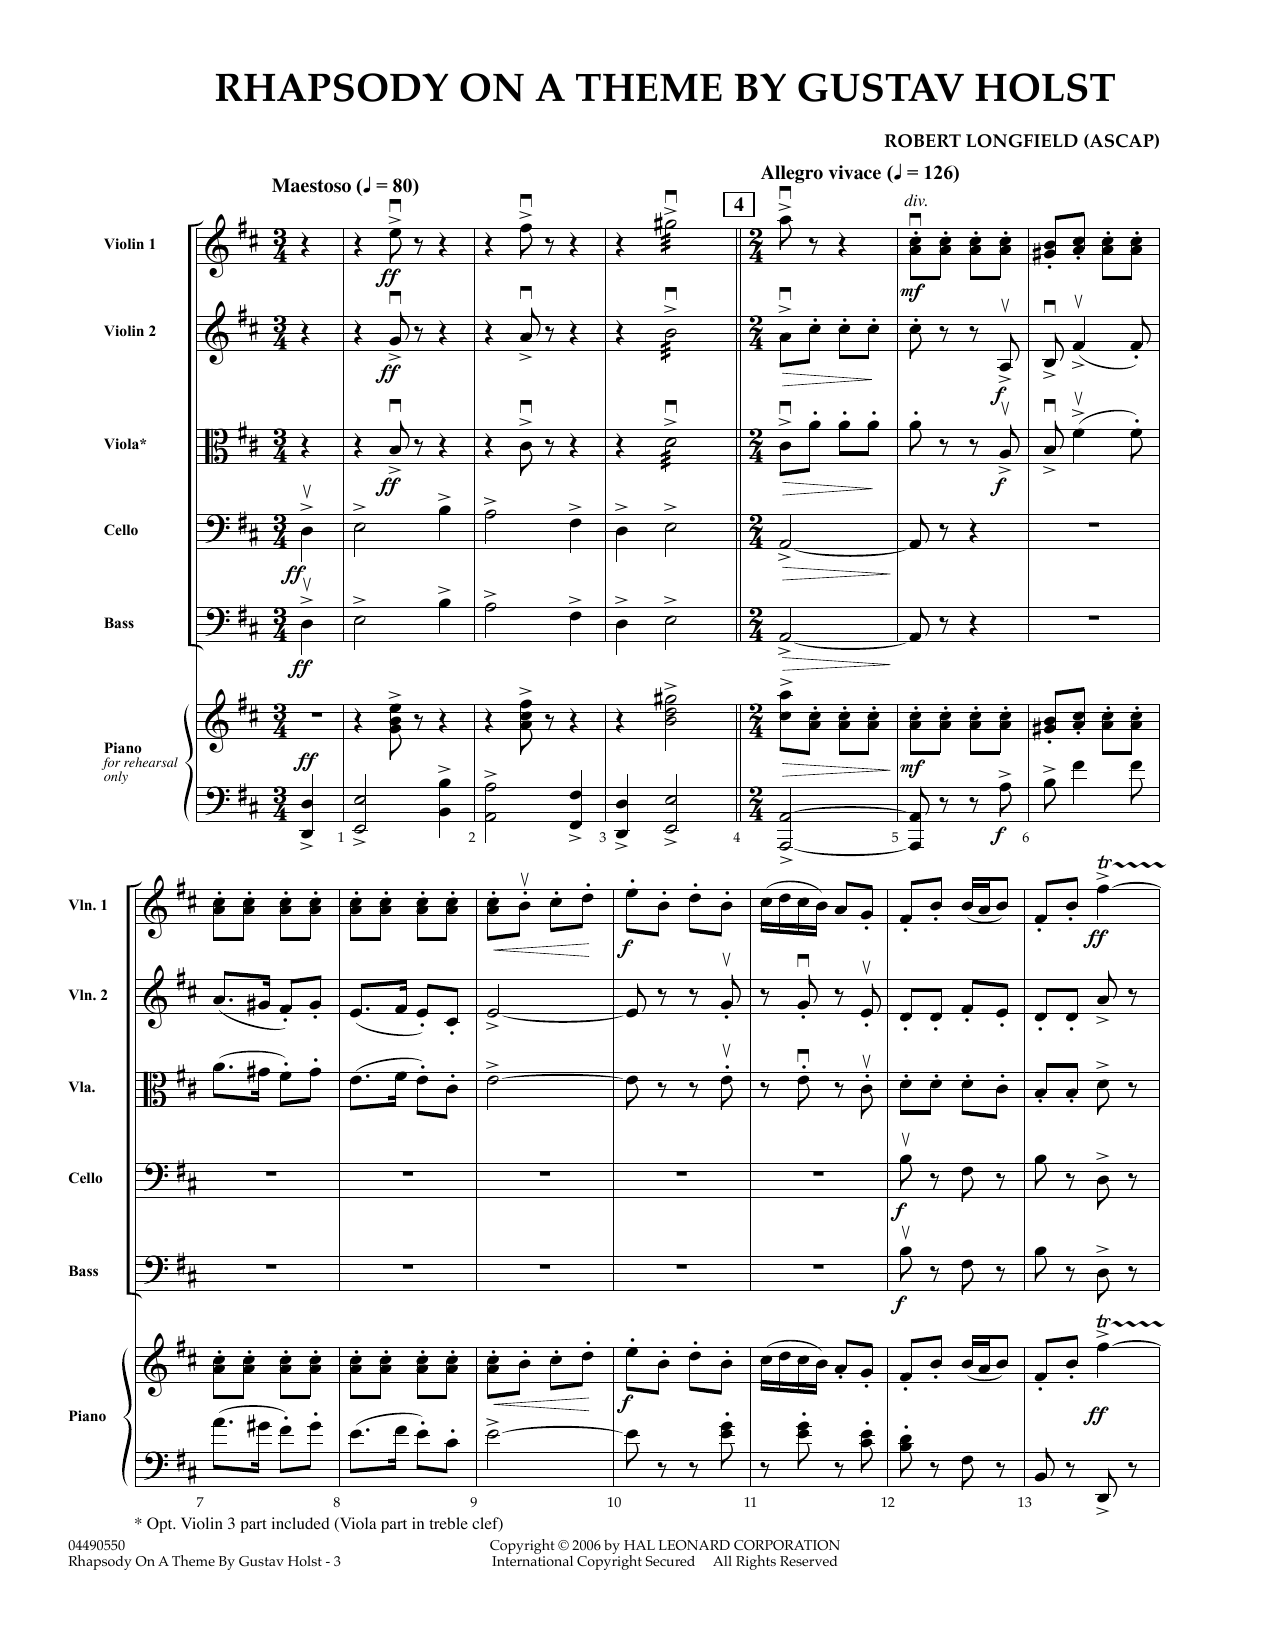 Rhapsody On A Theme by Gustav Holst (COMPLETE) sheet music for orchestra by Gustav Holst and Robert Longfield. Score Image Preview.